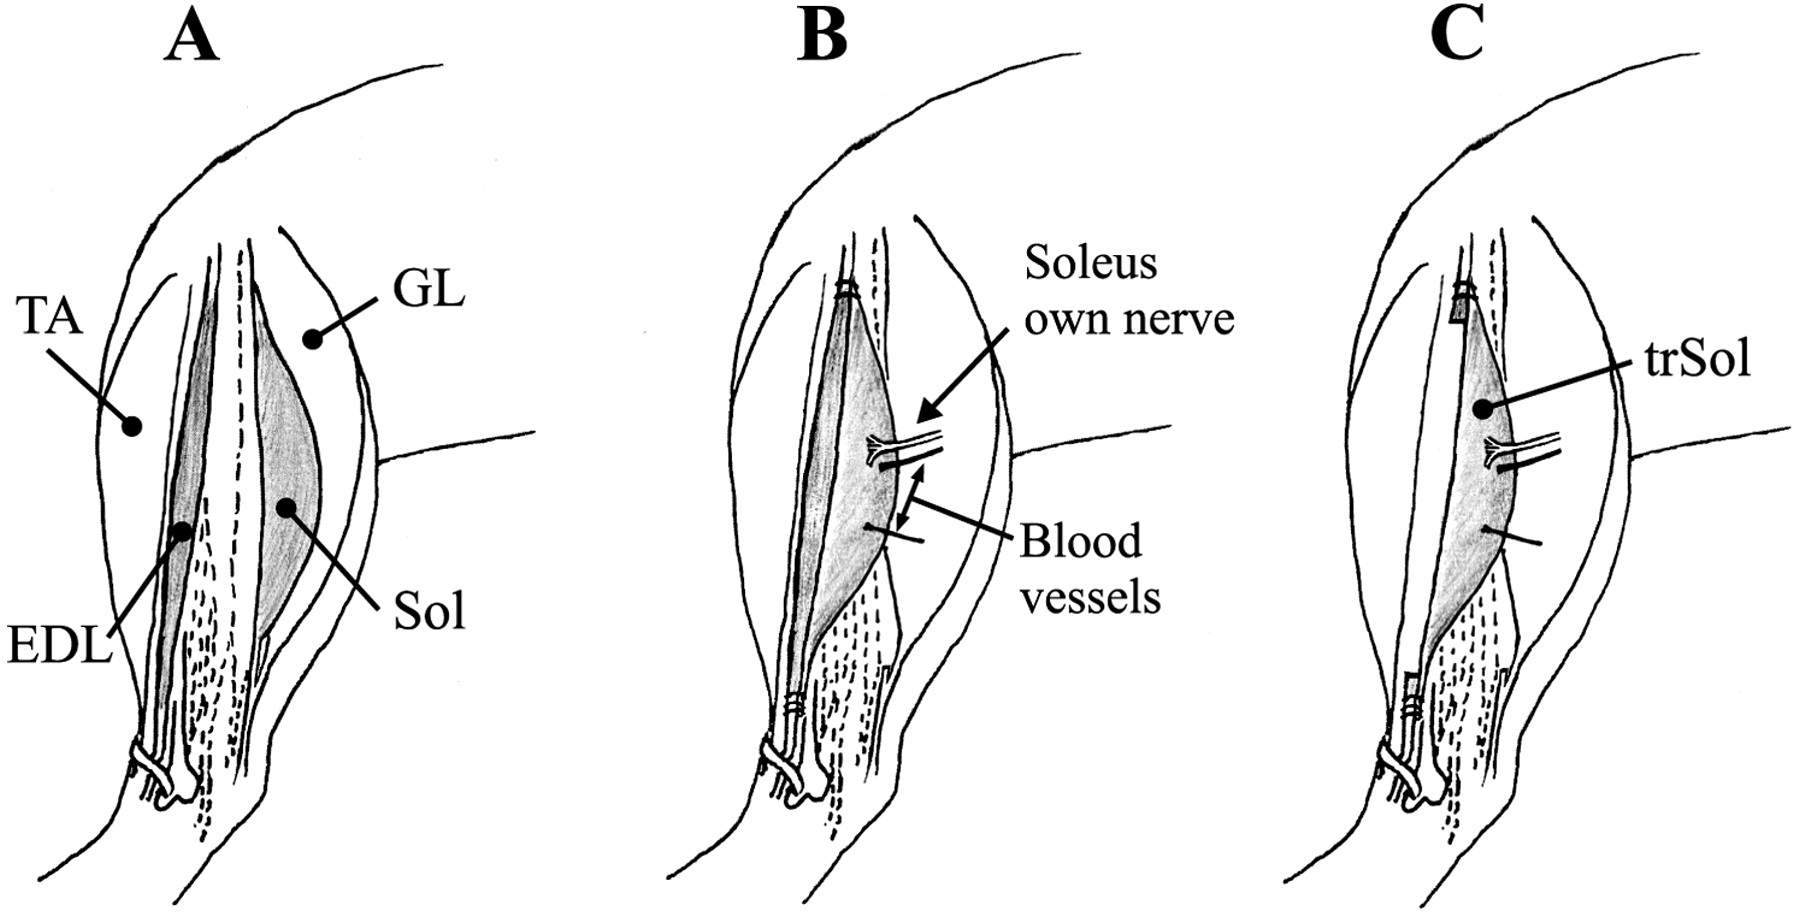 altered electromyographic activity pattern of rat soleus